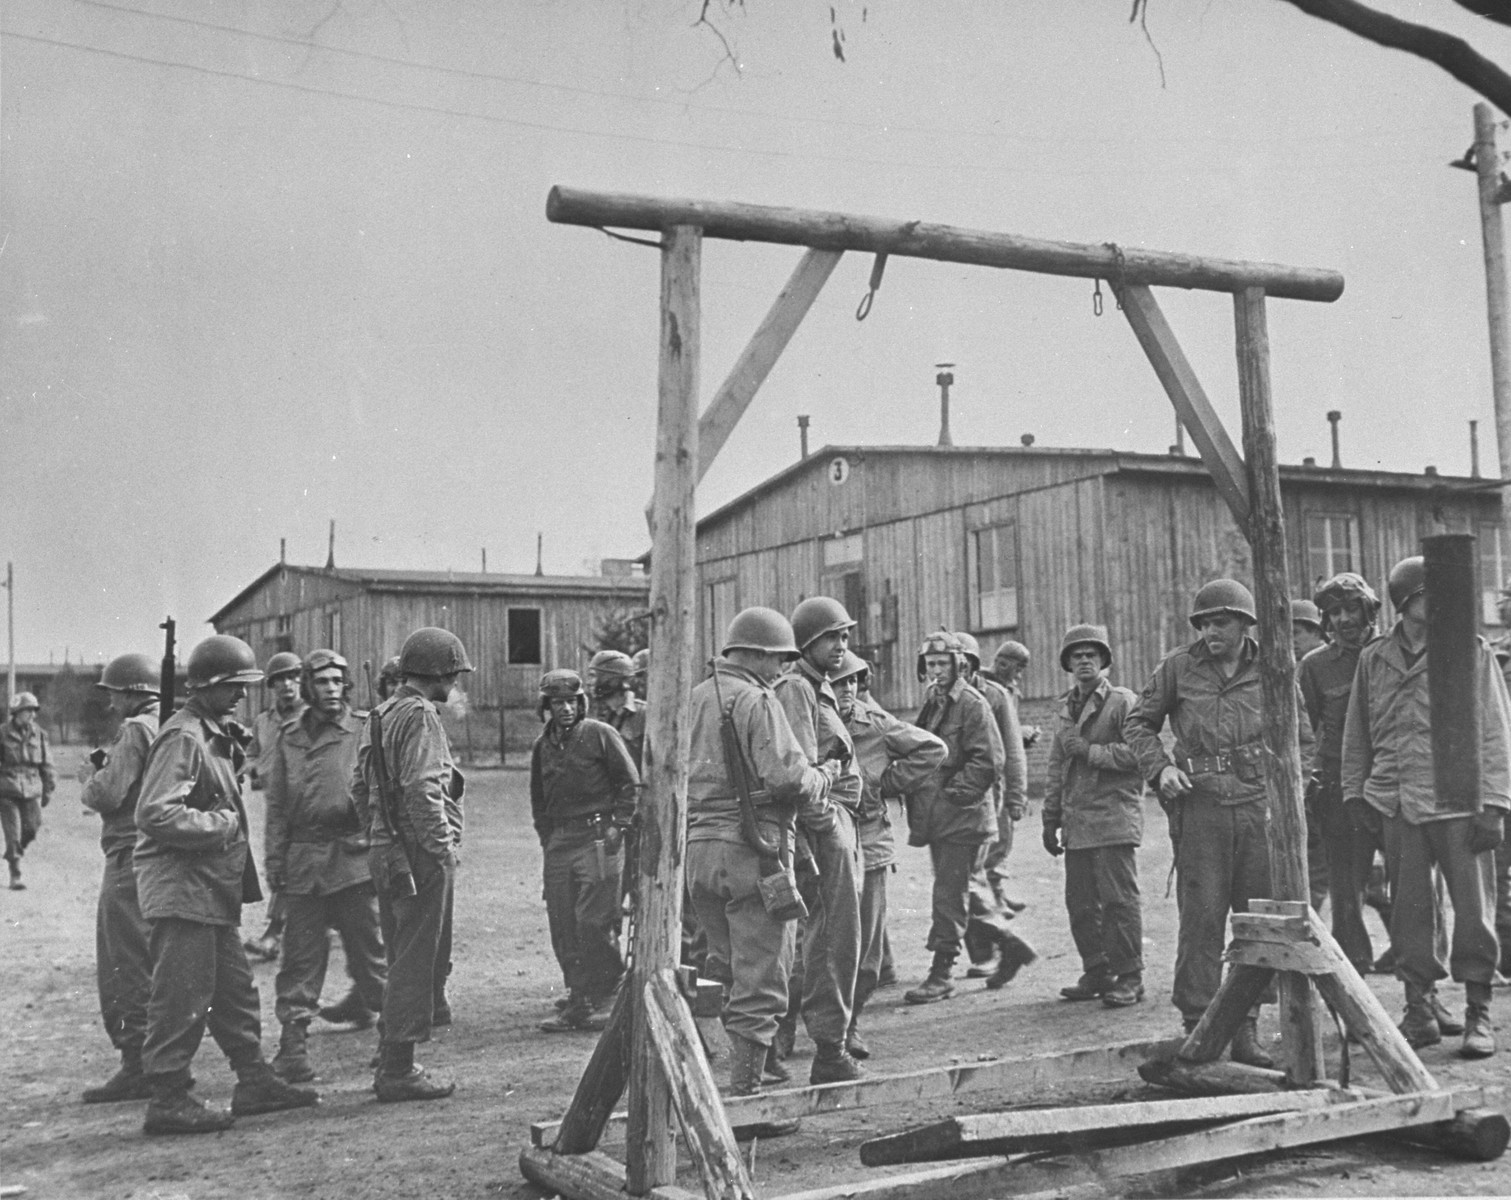 American soldiers view a gallows erected between rows of barracks in the Ohrdruf concentration camp.